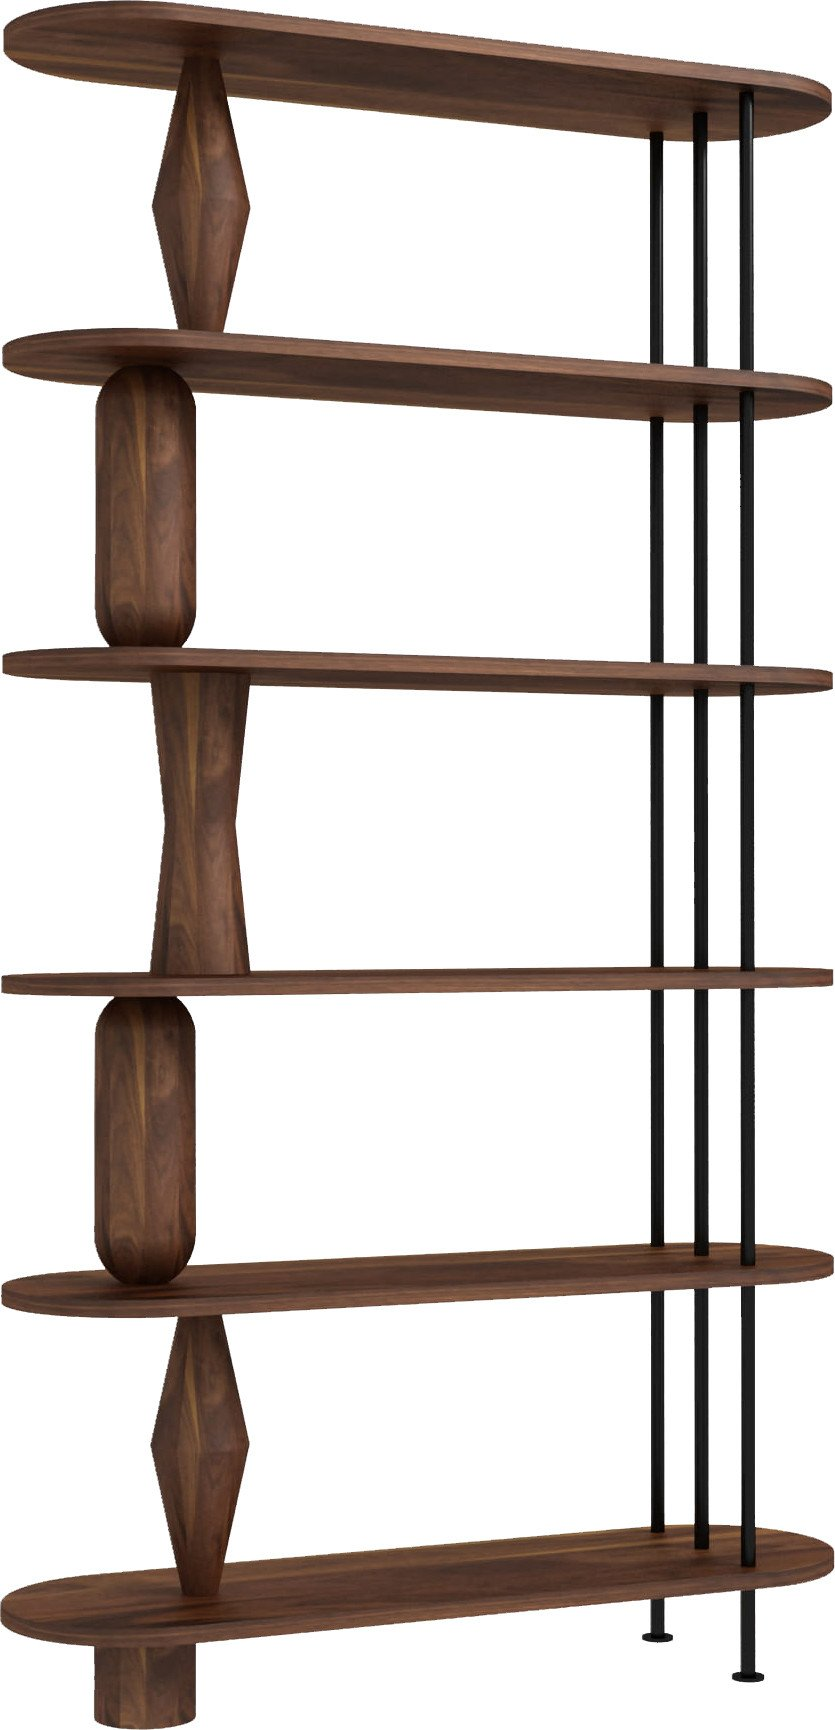 Vazoo 6 Bookcase American Walnut Natur Oil Wax, Tamo